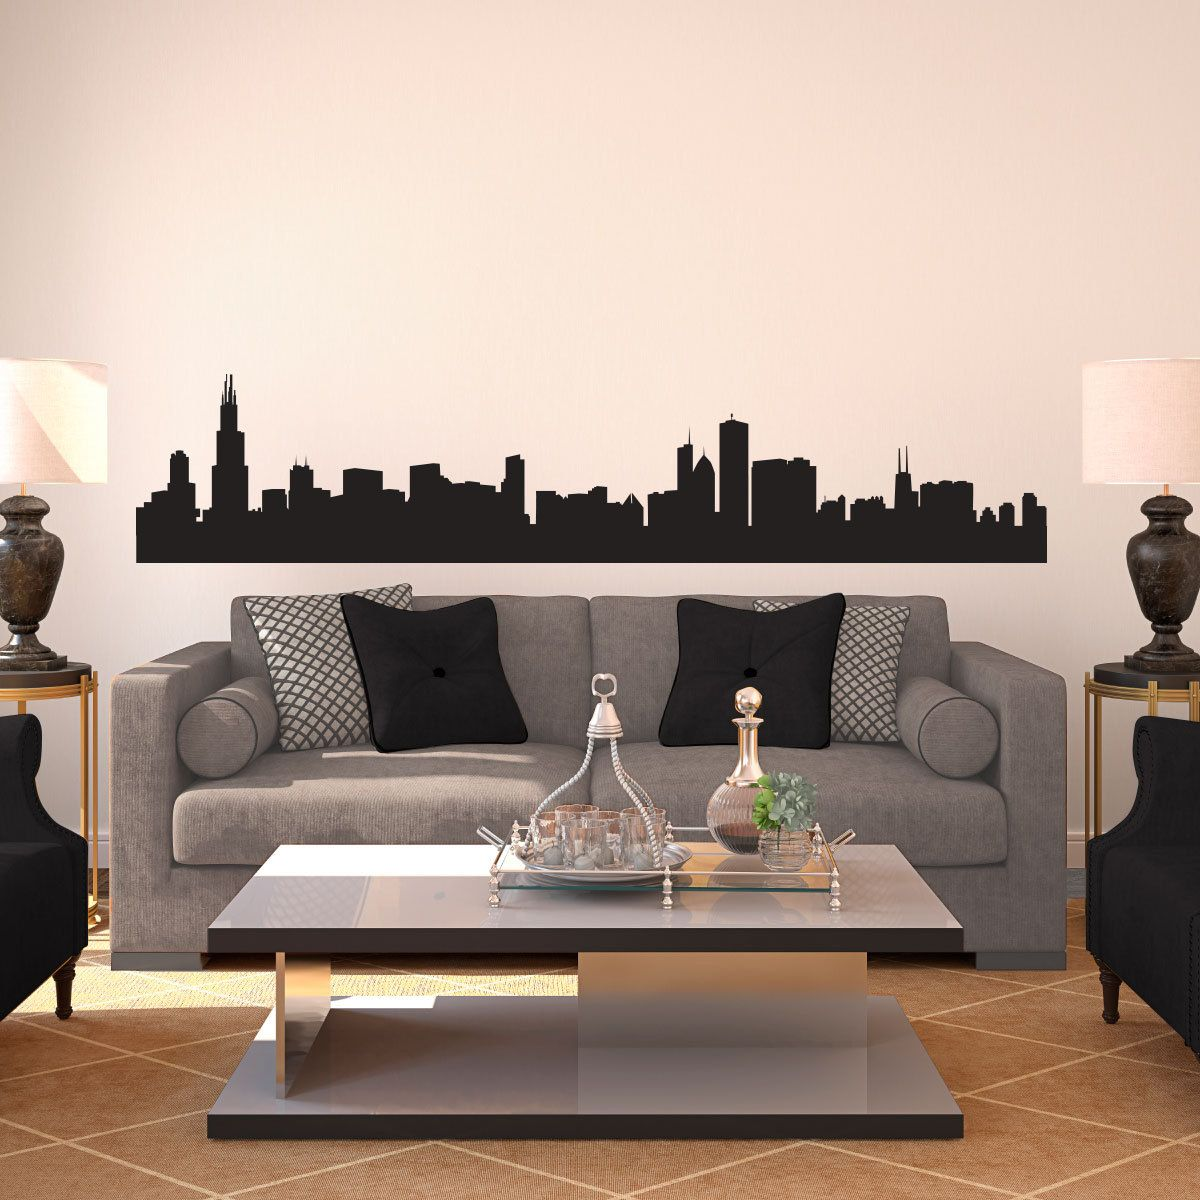 Chicago Skyline Silhouette Wall Decal Custom Vinyl By Danadecals - Custom vinyl stickers chicago